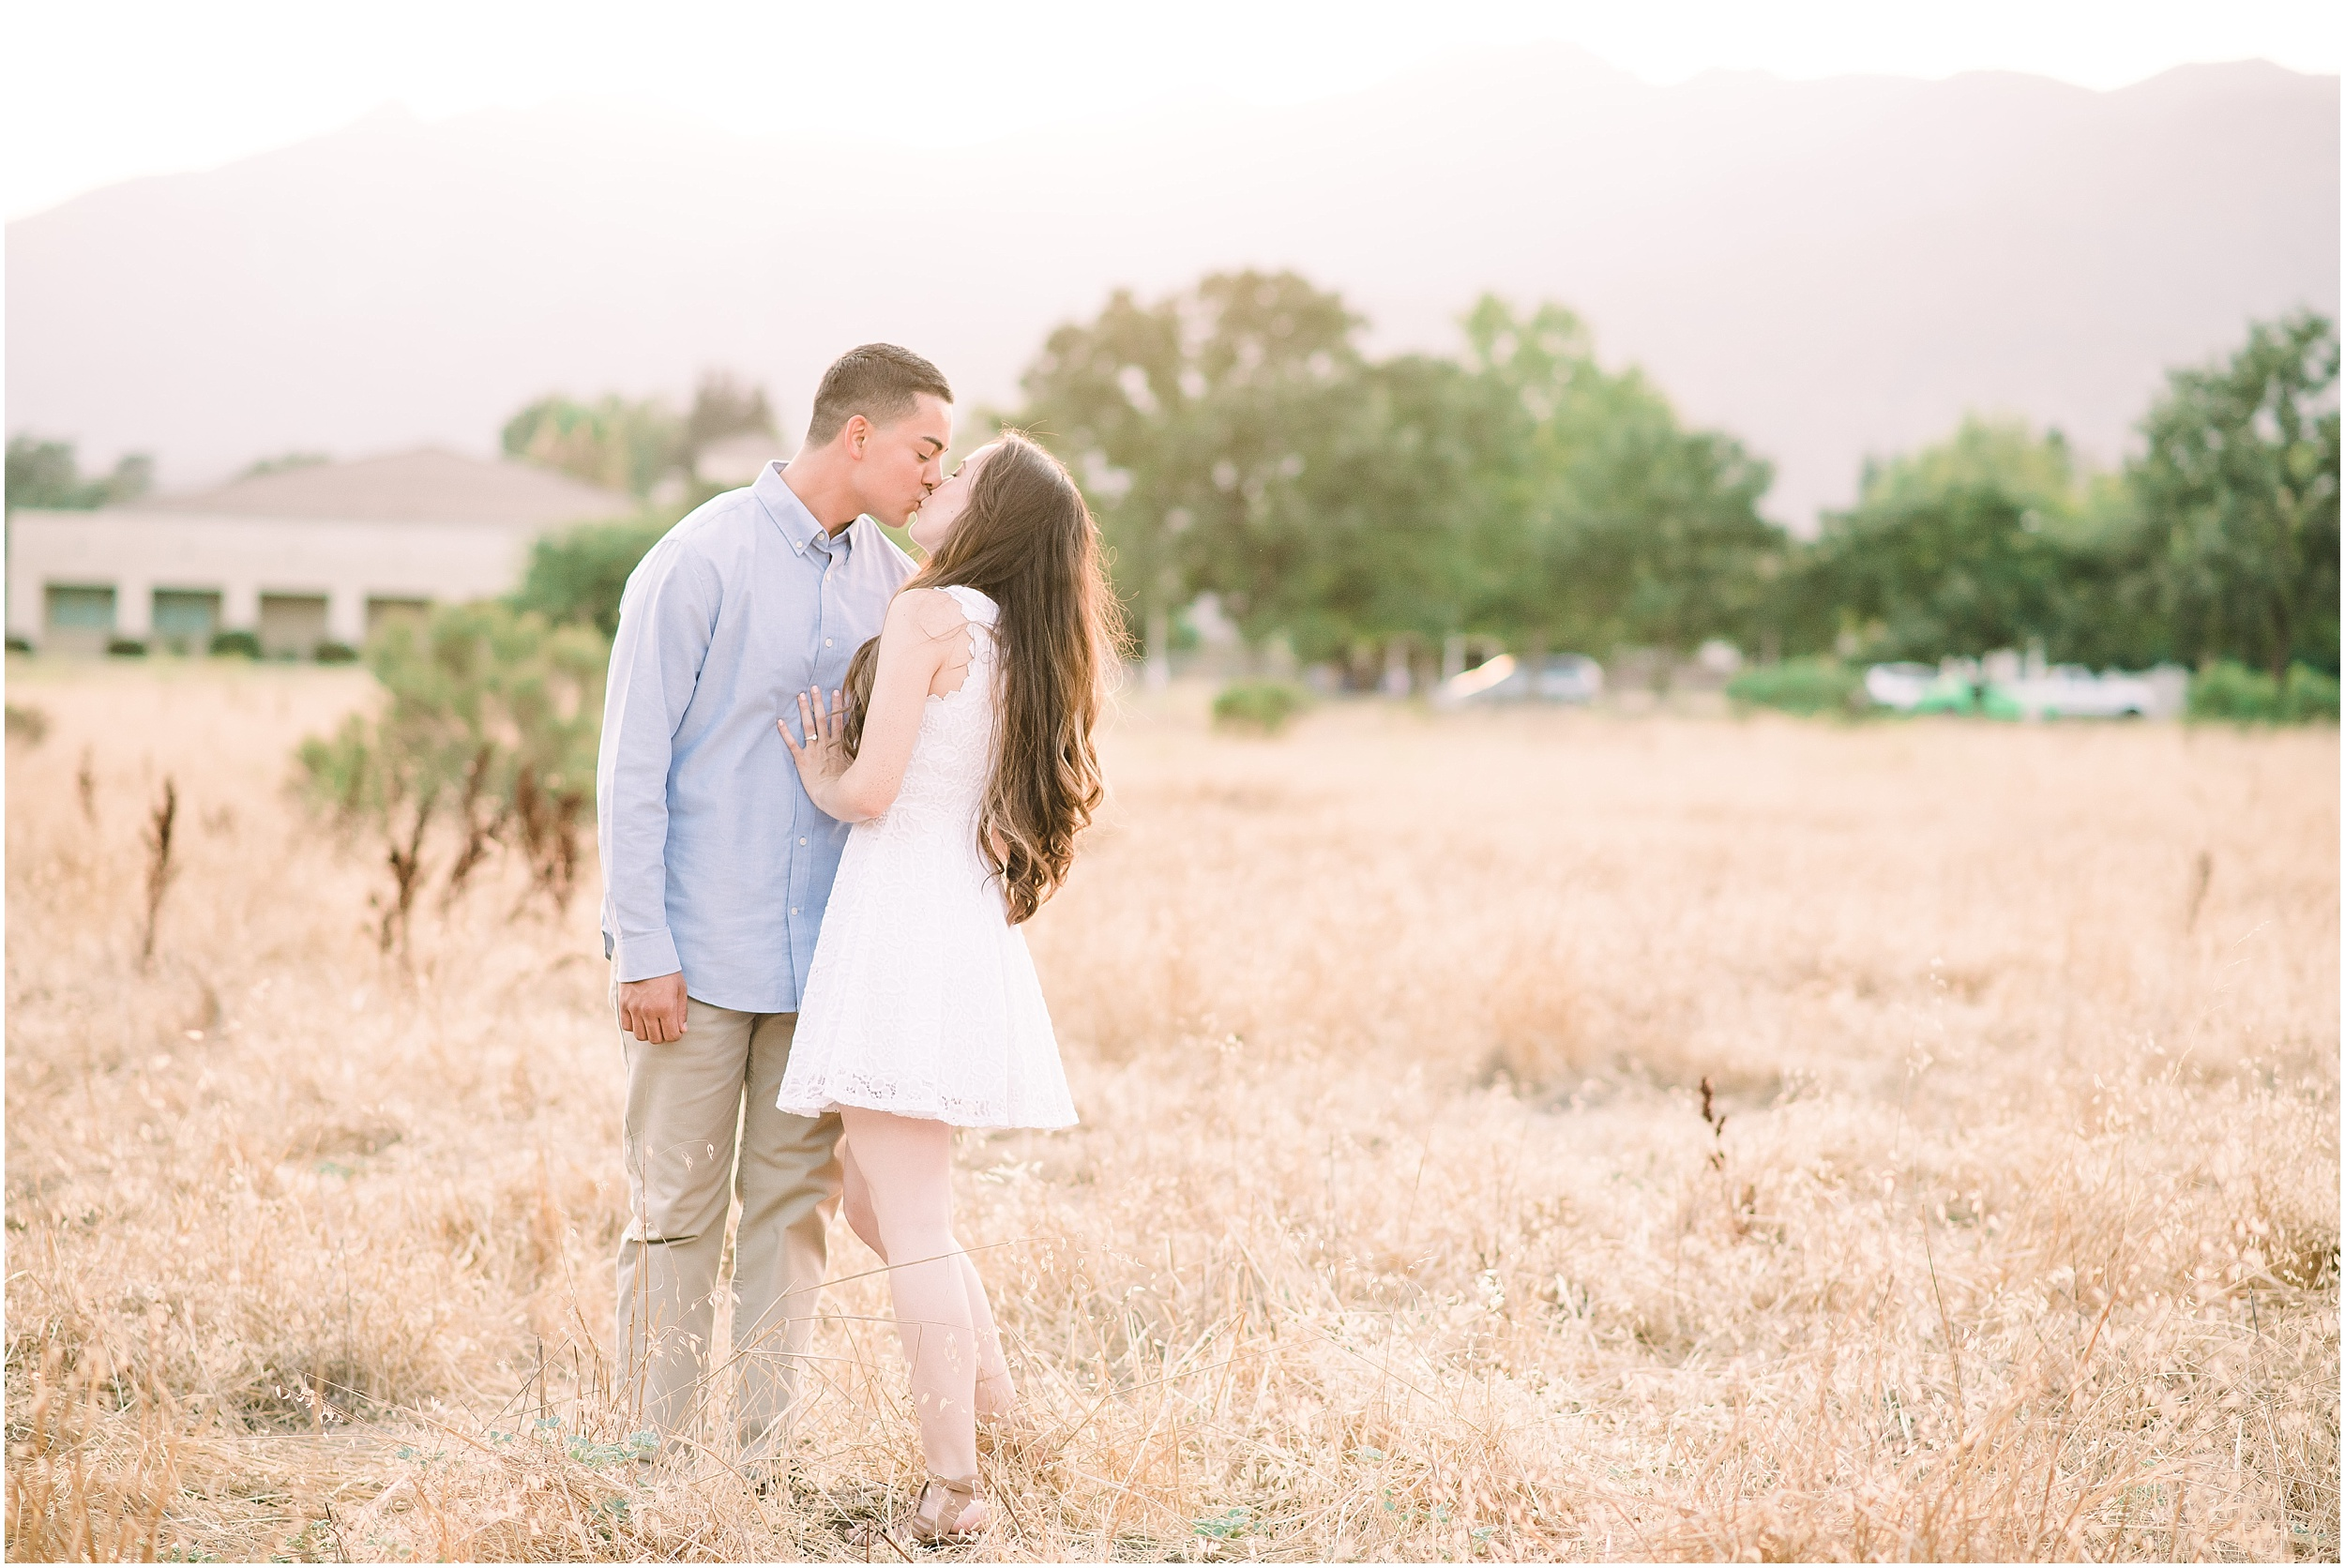 Valeria-Gonzalez-Photography-Wedding-and-Portrait-Photographer-Richmond-Virginia-Engagement-Session-in-Ojai-California_0026.jpg